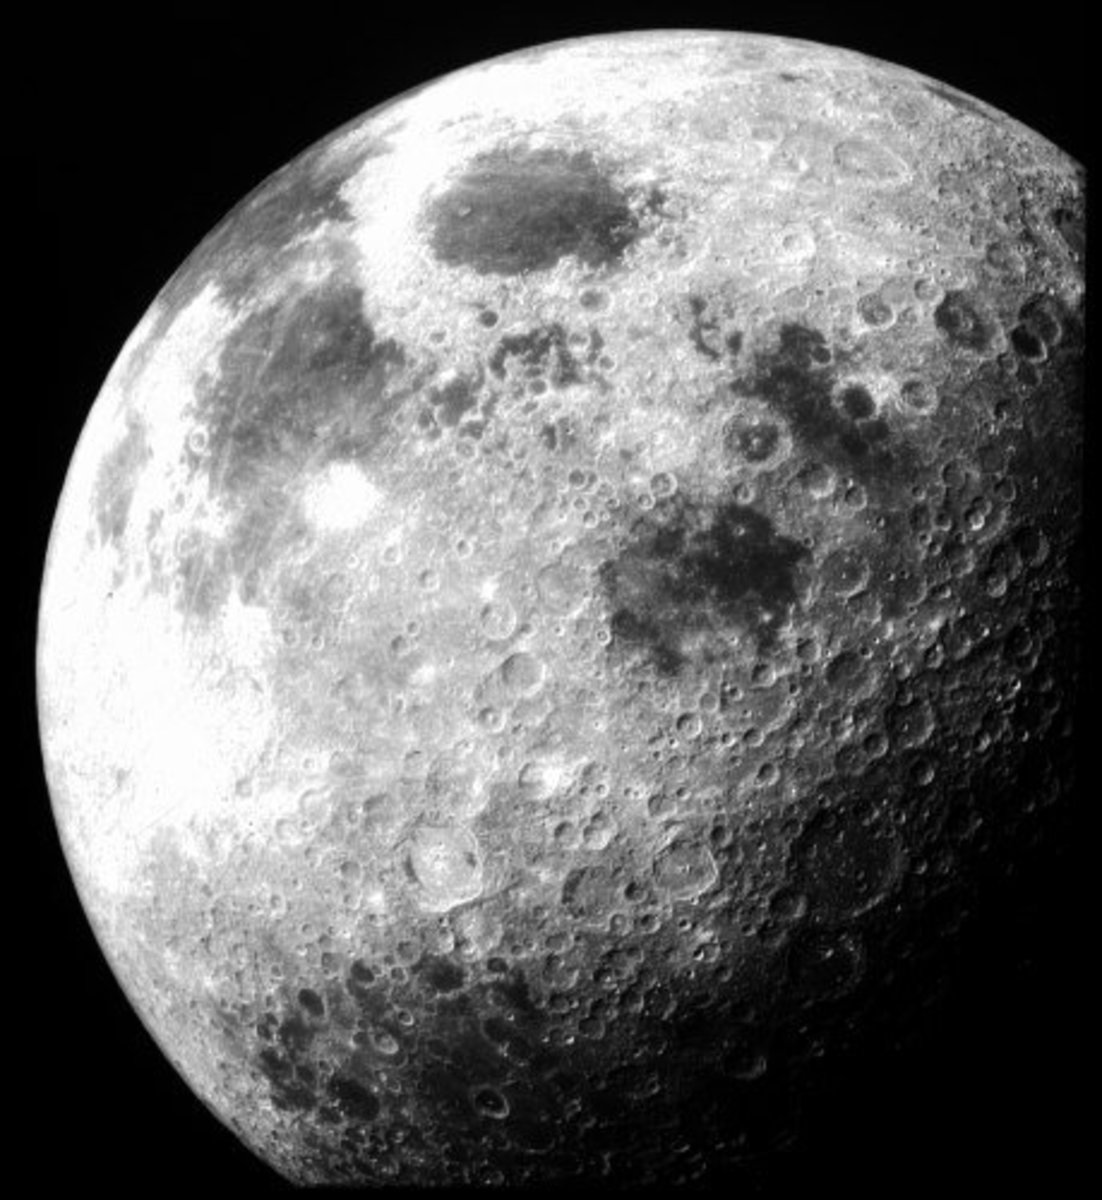 Is the Moon Hollow? Evidence Supporting Hollow Moon Theory